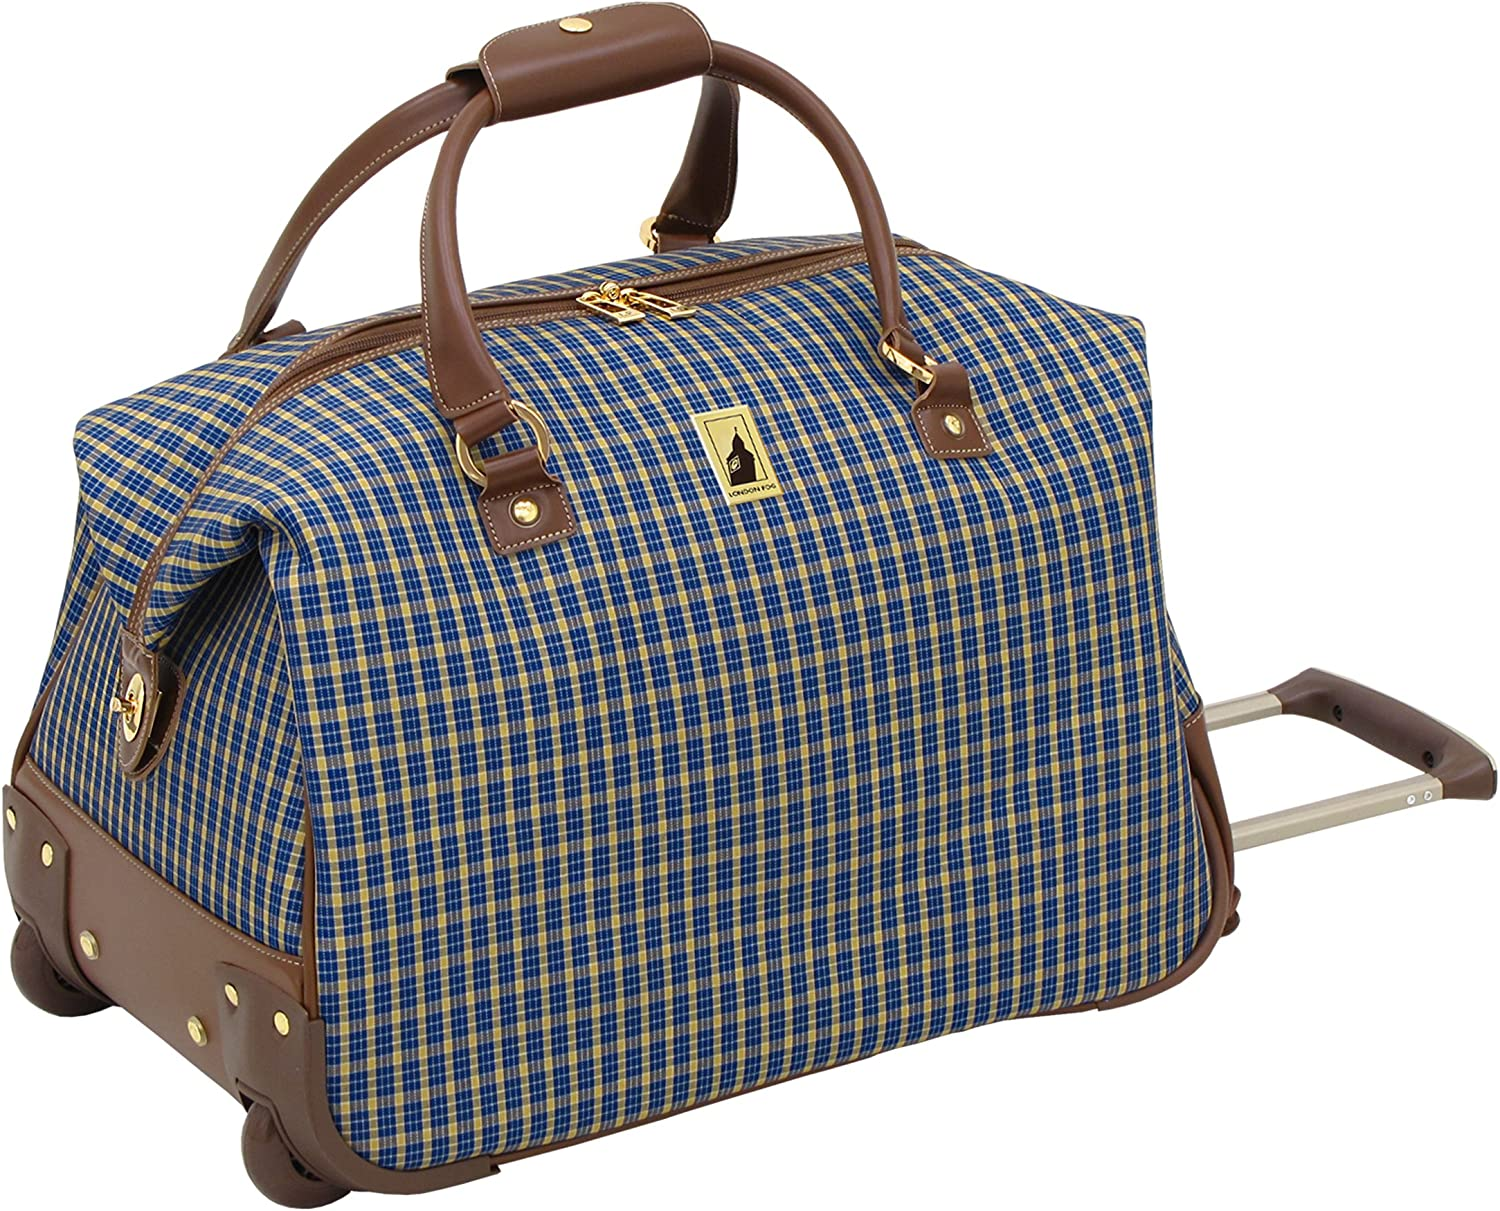 The London Fog Kensington 20 Inch Wheeled Club Bag travel product recommended by Kristine Thorndyke on Lifney.